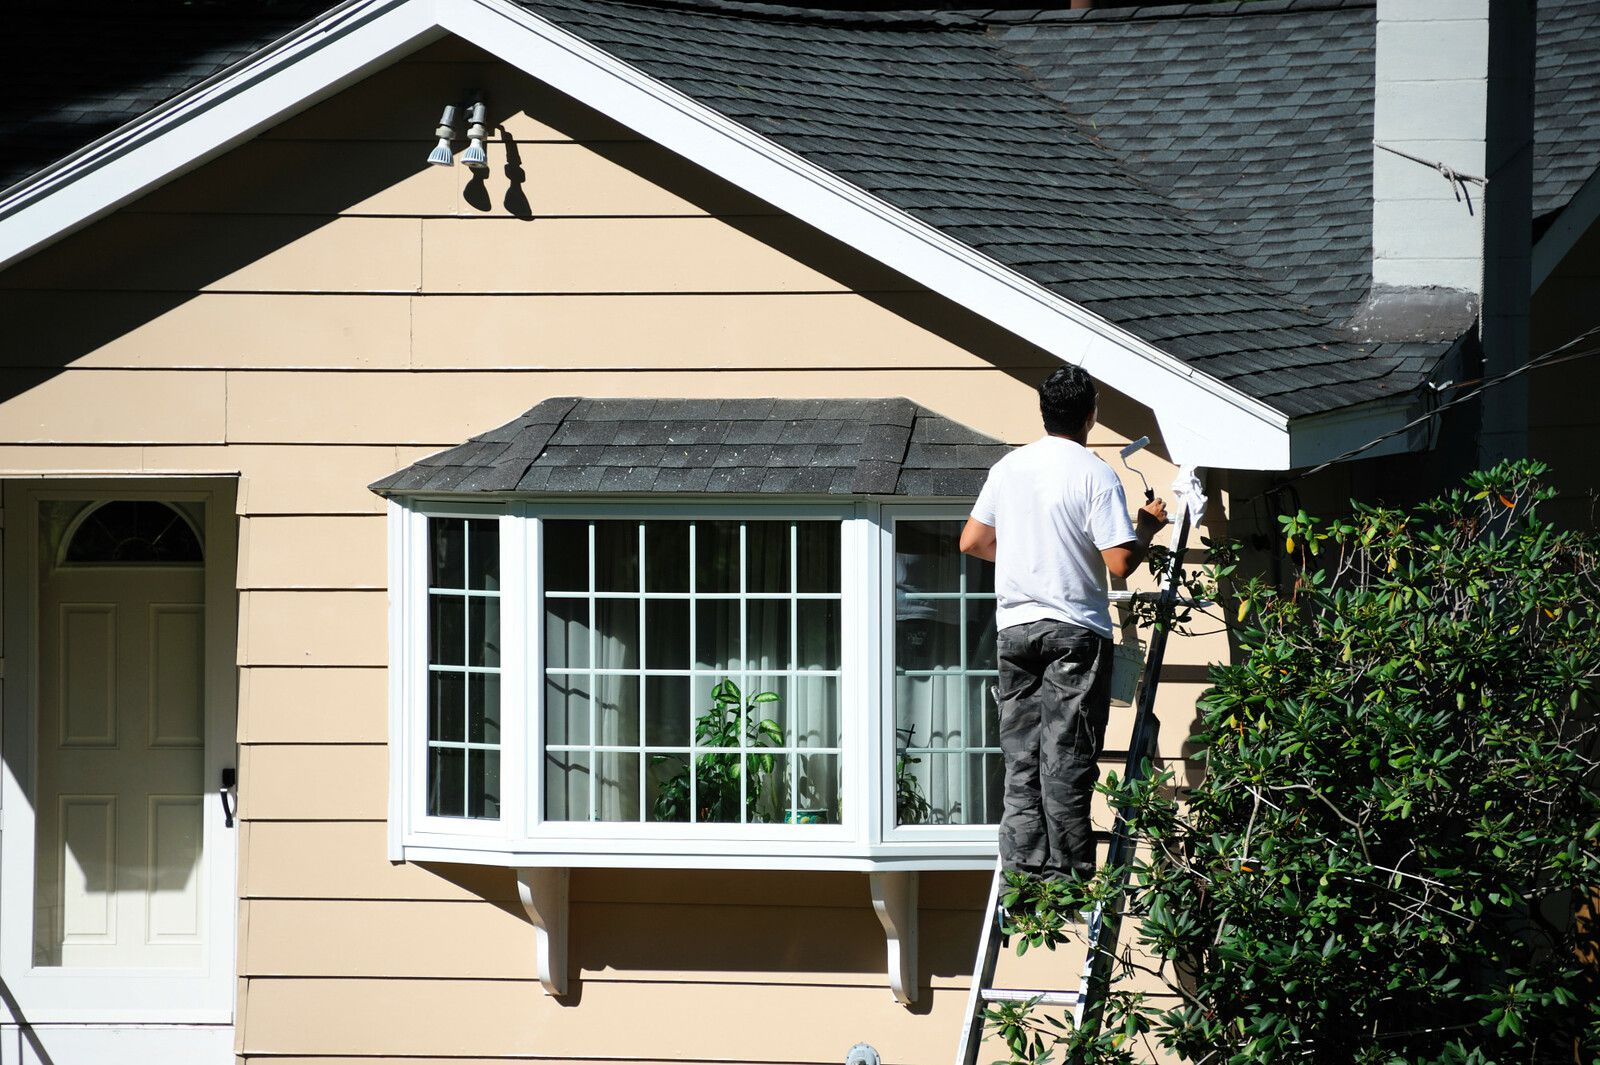 Industrial Roofing Contractors Offer Plastic Home Siding Substitute Solutions